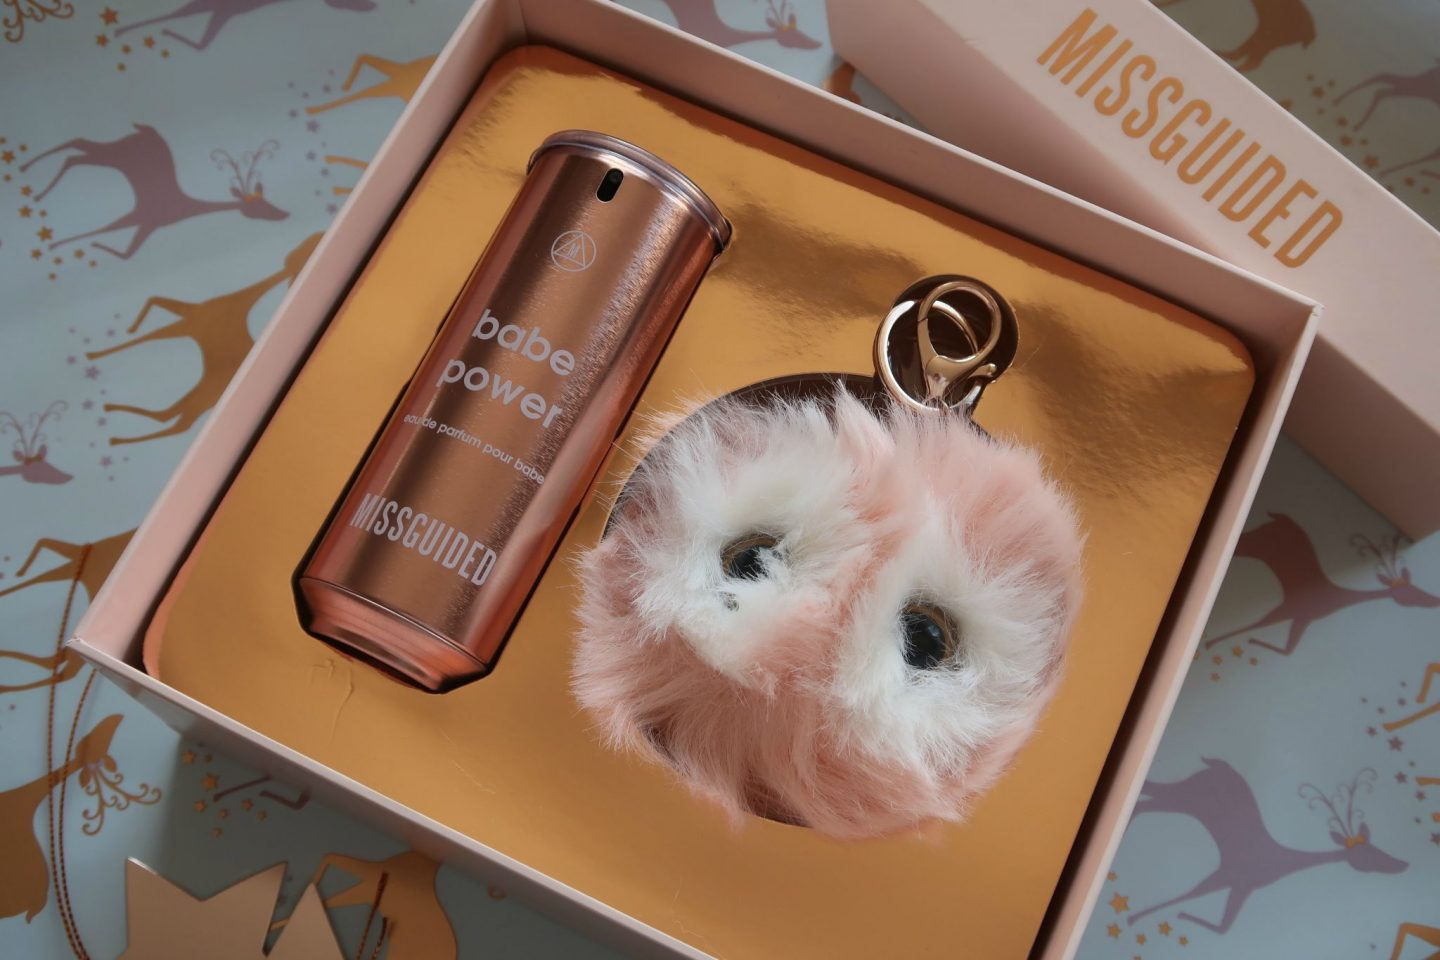 Missguided Babe Power Christmas Gift Set WhatLauraLoves Review